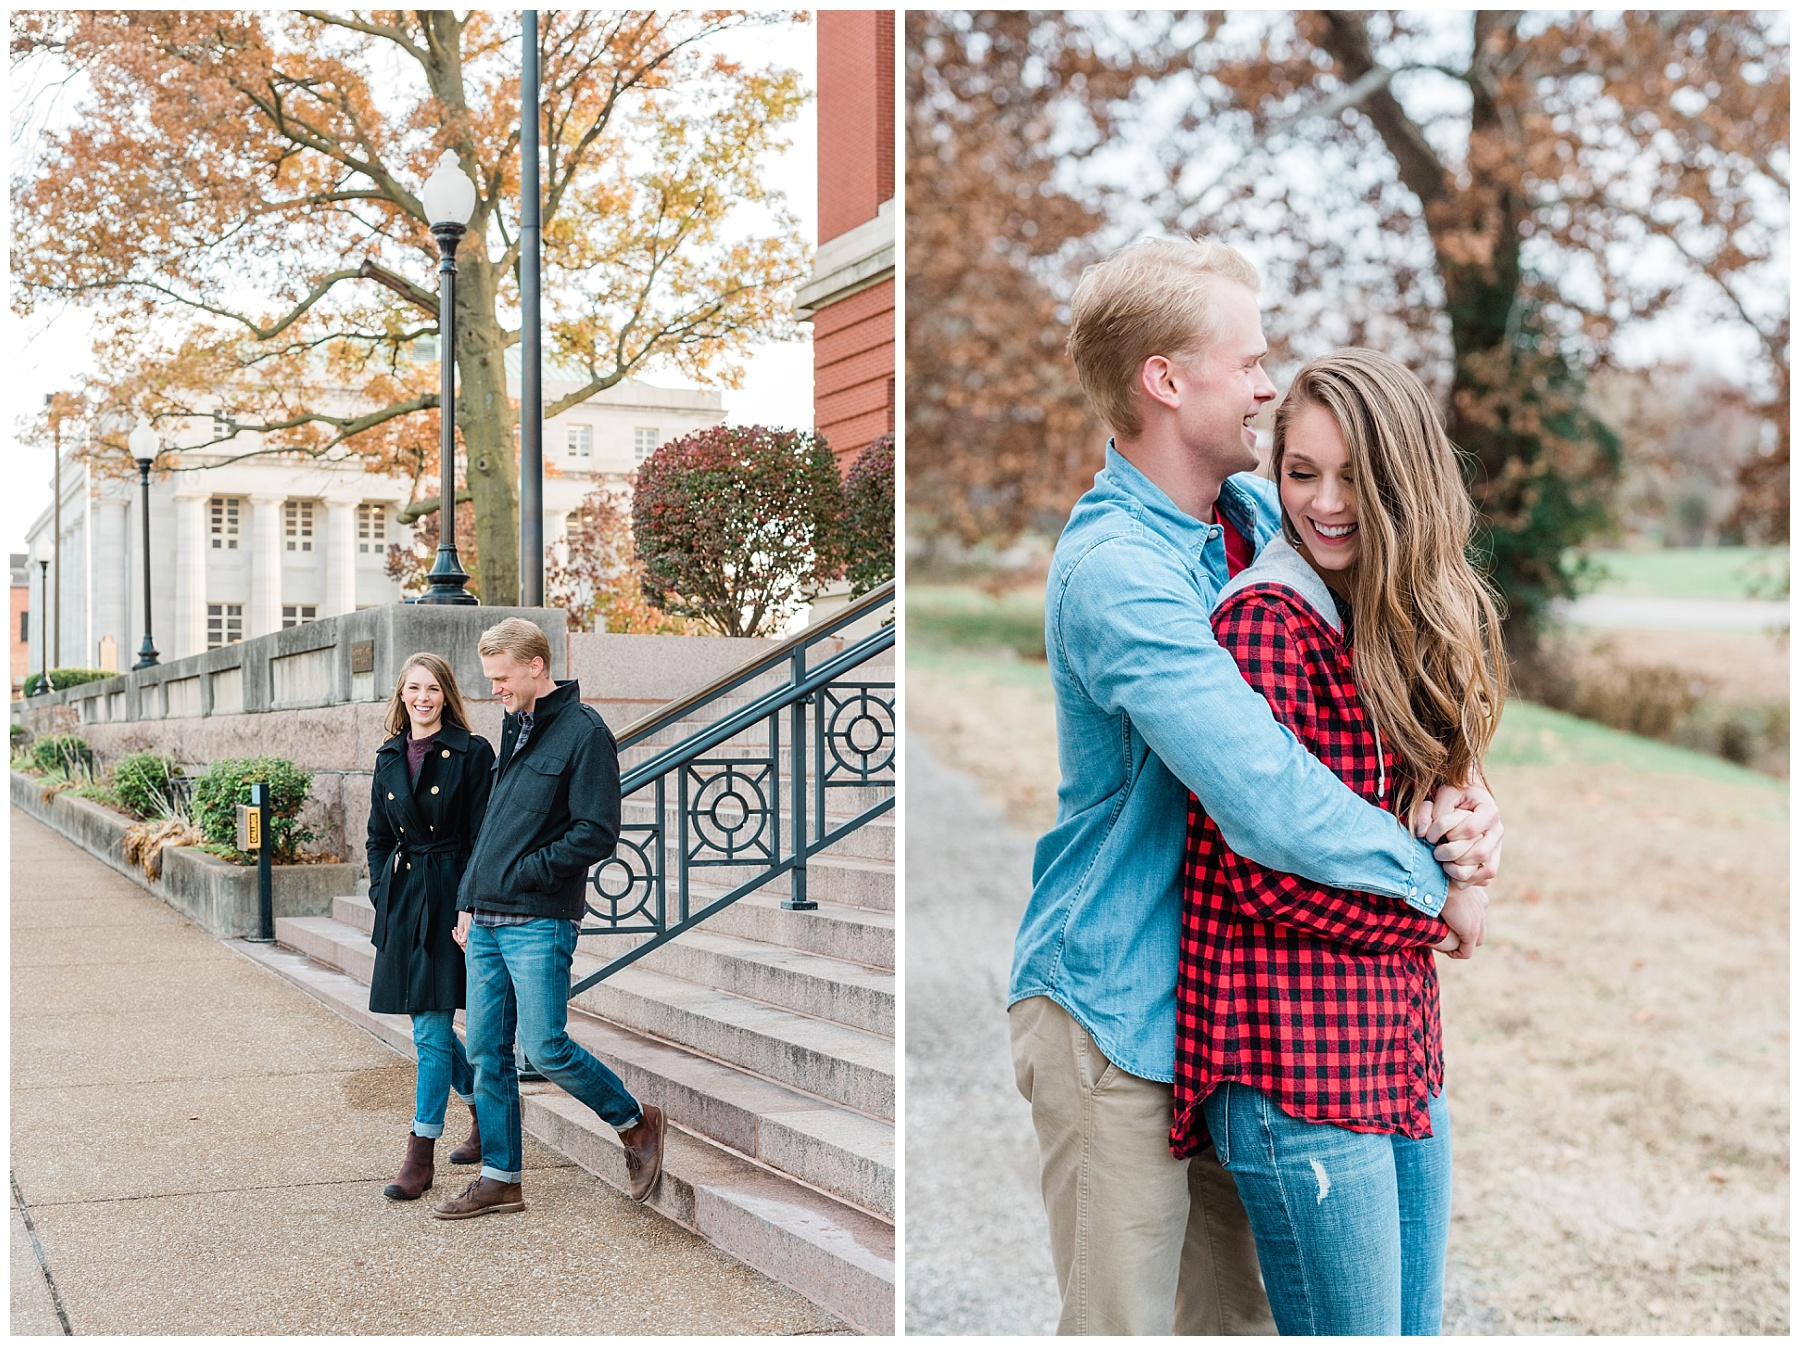 Downtown Jefferson City Engagement Session in Winter at Old Shoe Factory by Kelsi Kliethermes Photography Kansas City Missouri Wedding Photographer_0004.jpg